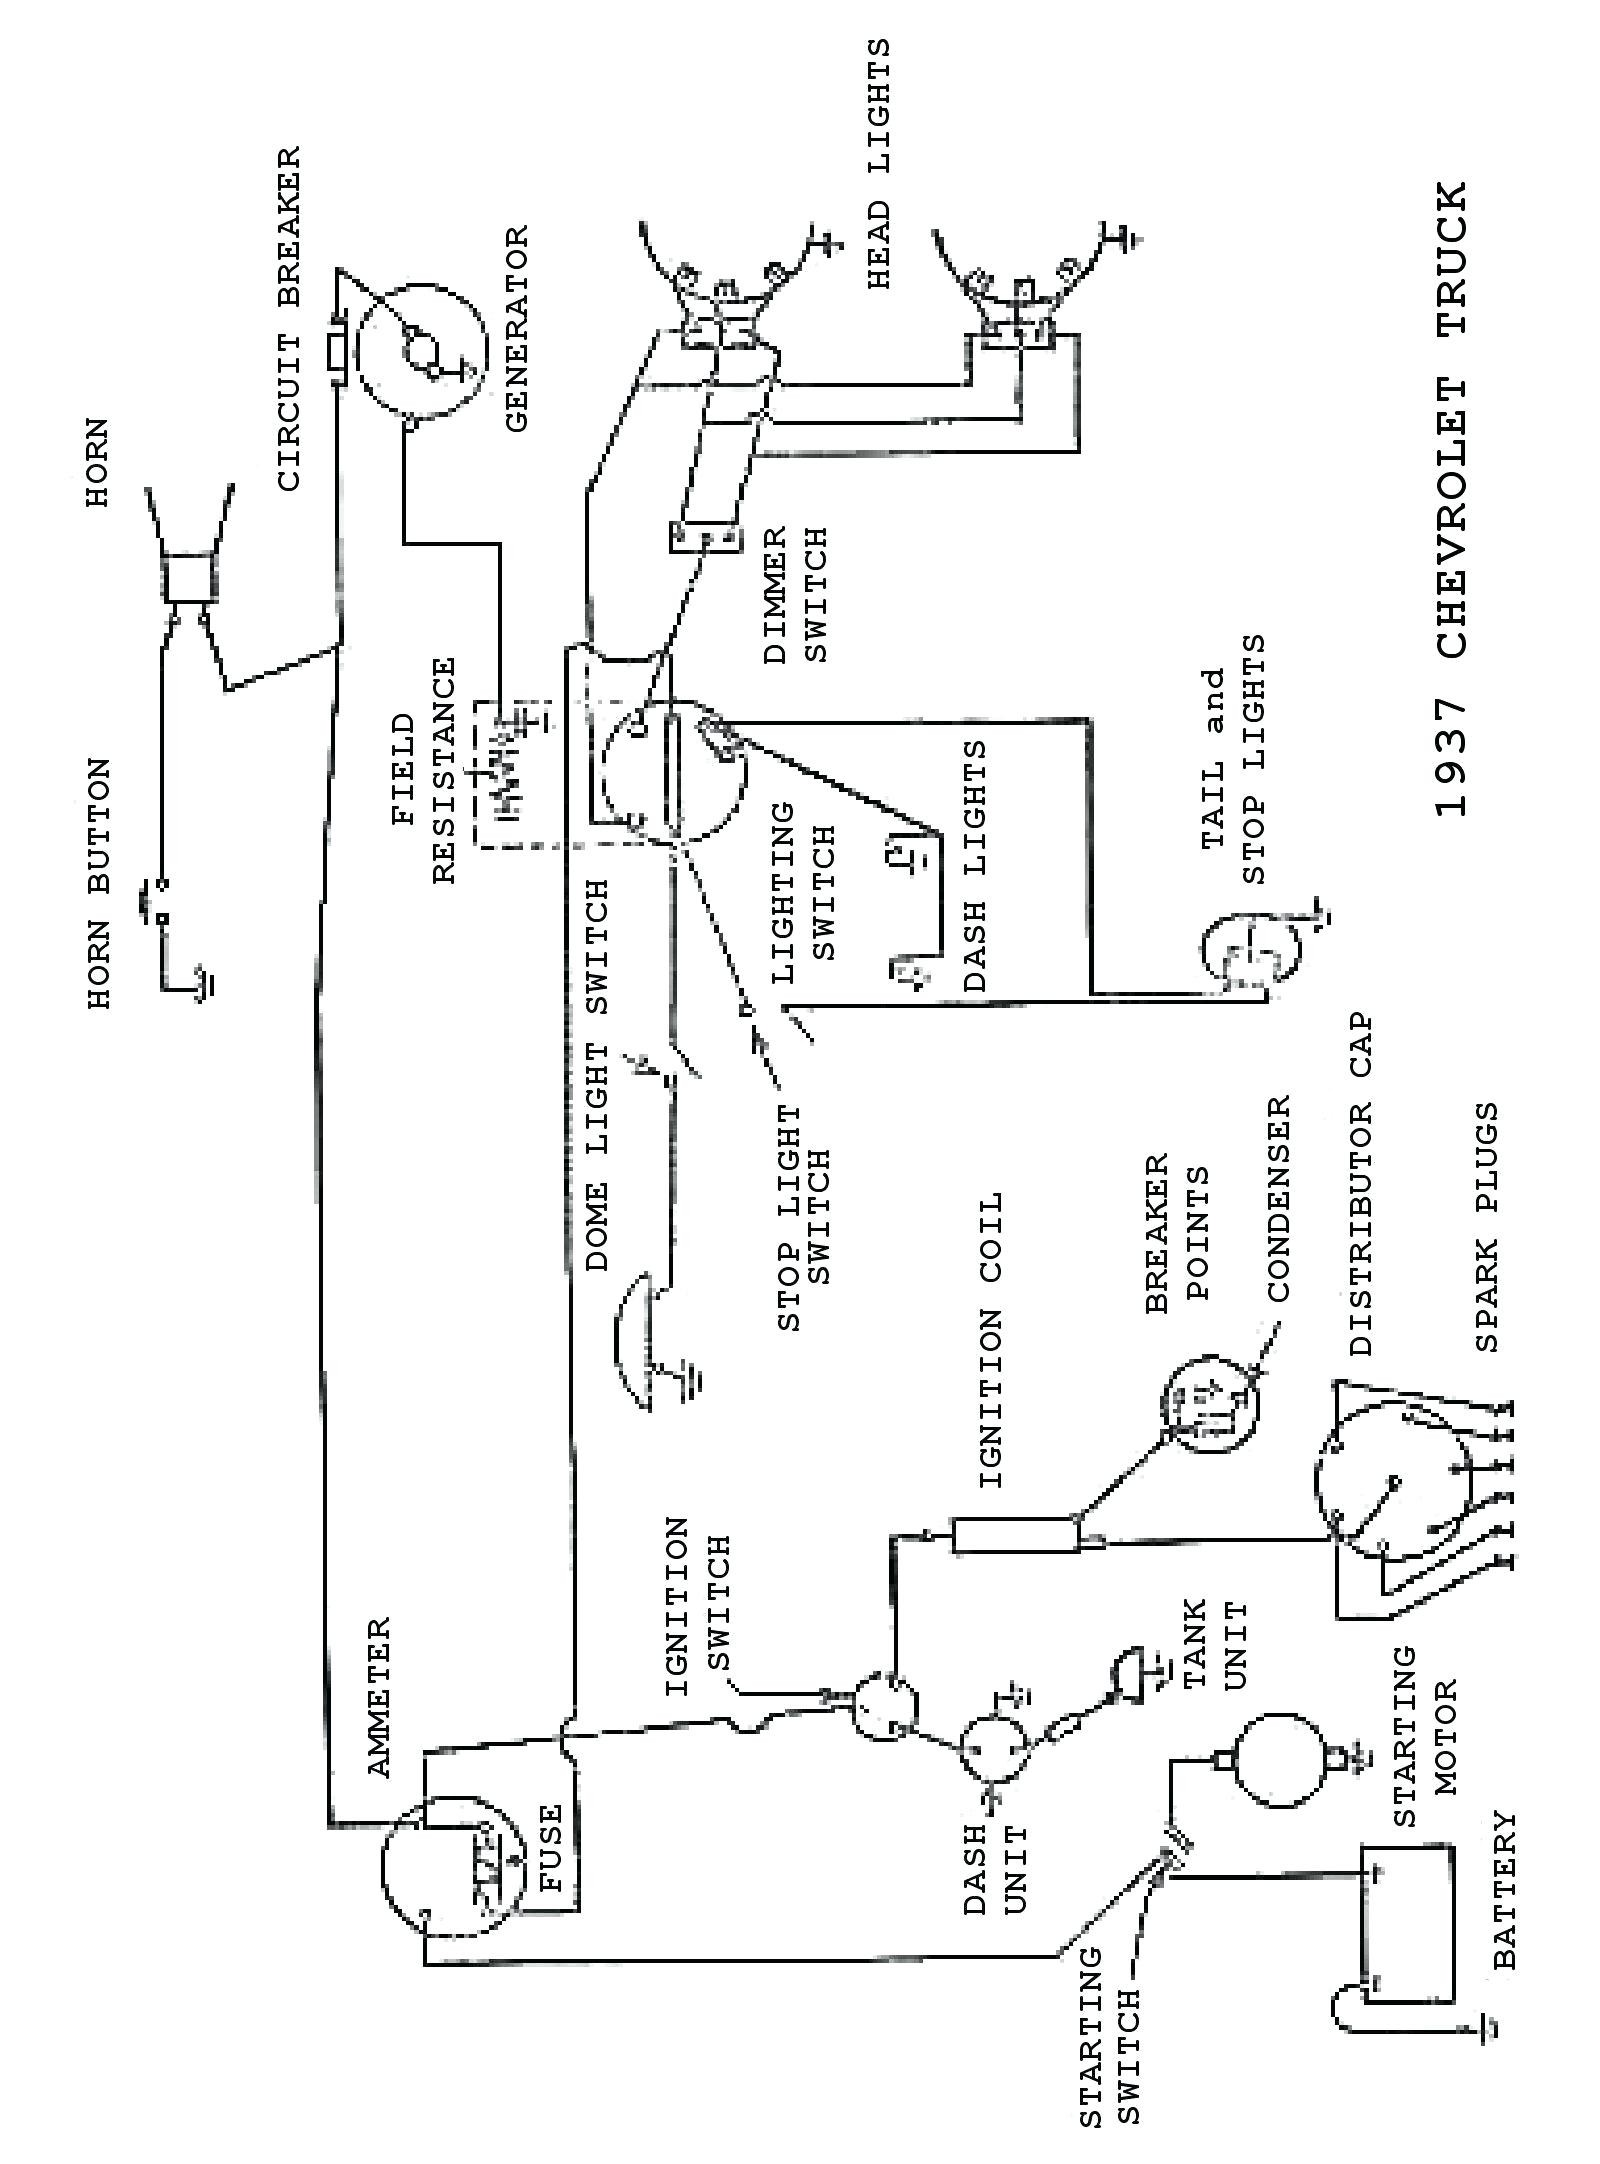 John Deere 4240 Wiring Diagram And Schematics 40 Harness 4020 Gas Solenoid Rh Banyan Palace Com 7220